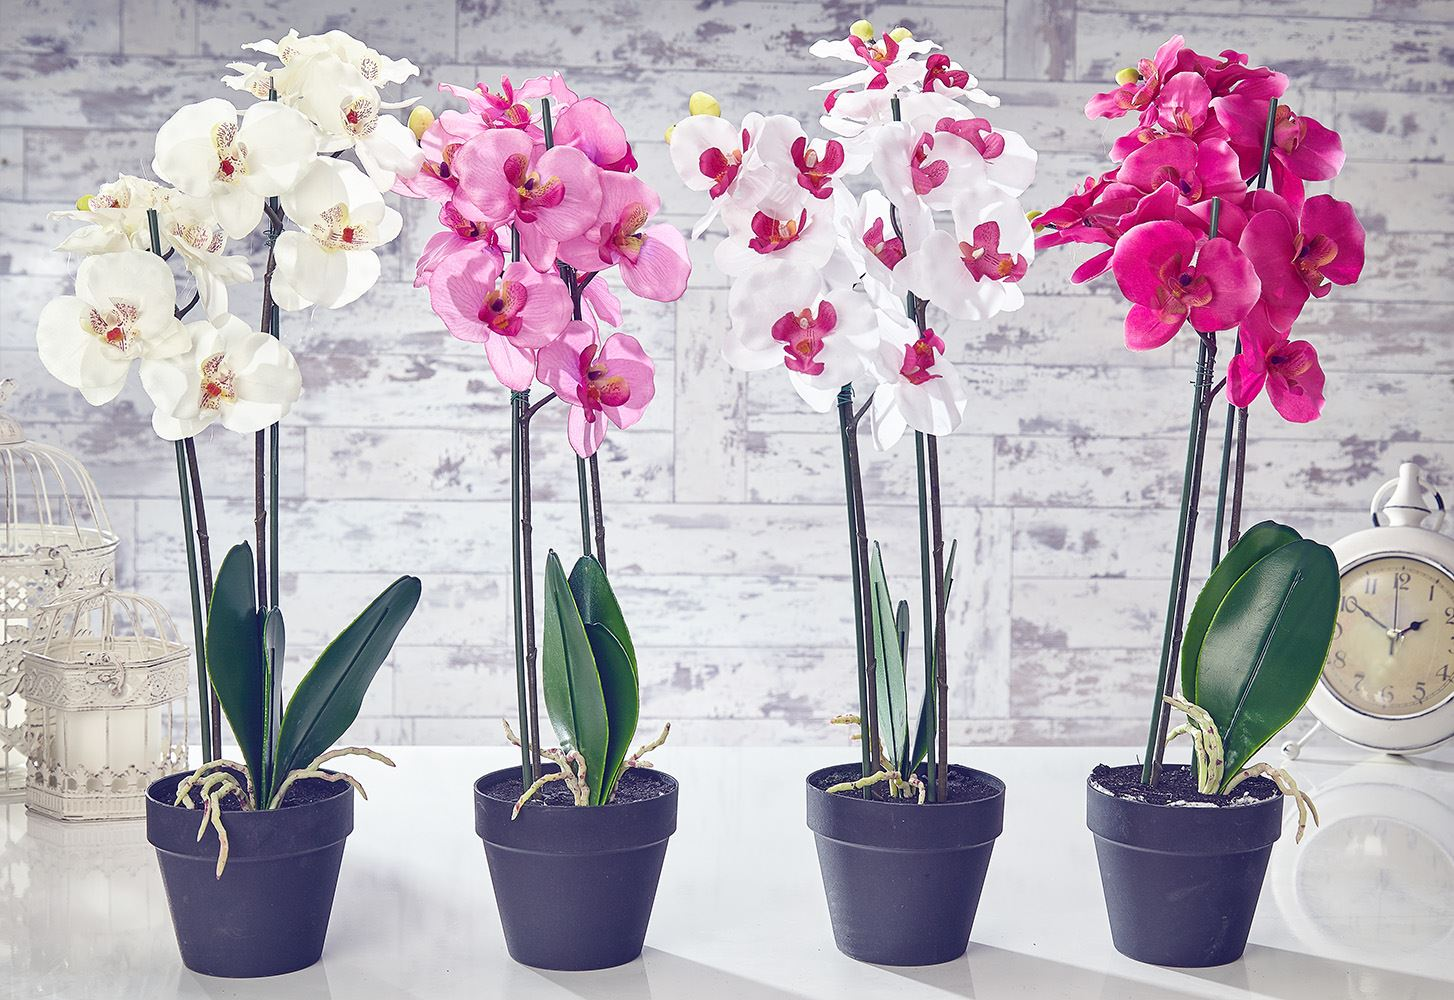 Artificial orchid flowers plants in pot home decor garden for Artificial flowers decoration home